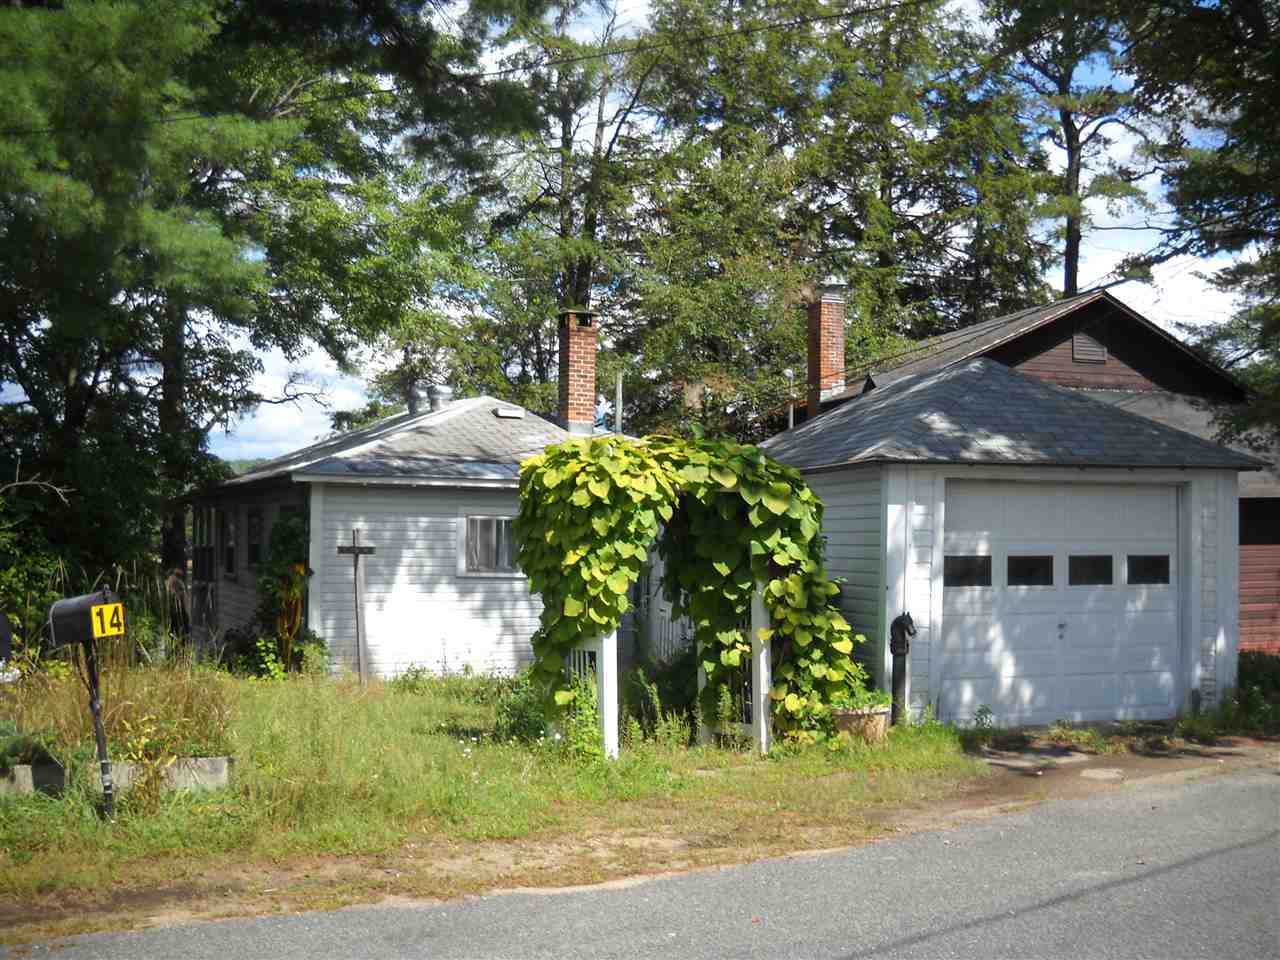 MLS 4777622: 12 Houghton Point, Swanzey NH